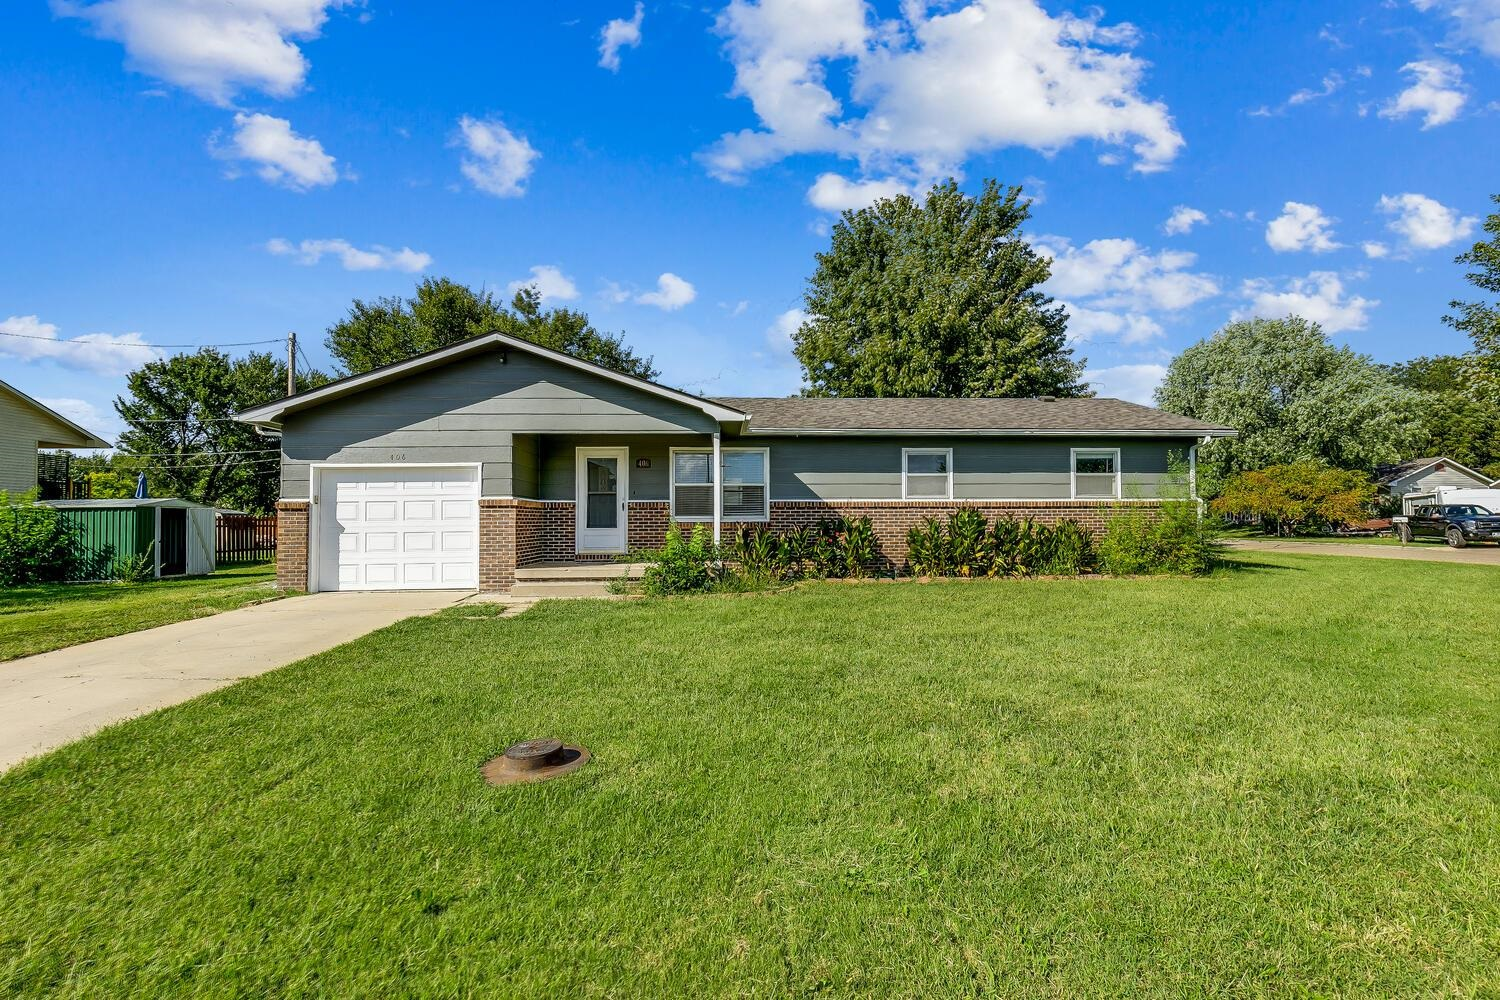 Beautifully updated 3 bedroom, 2 bath ranch home located on a corner lot in a quiet neighborhood. Op